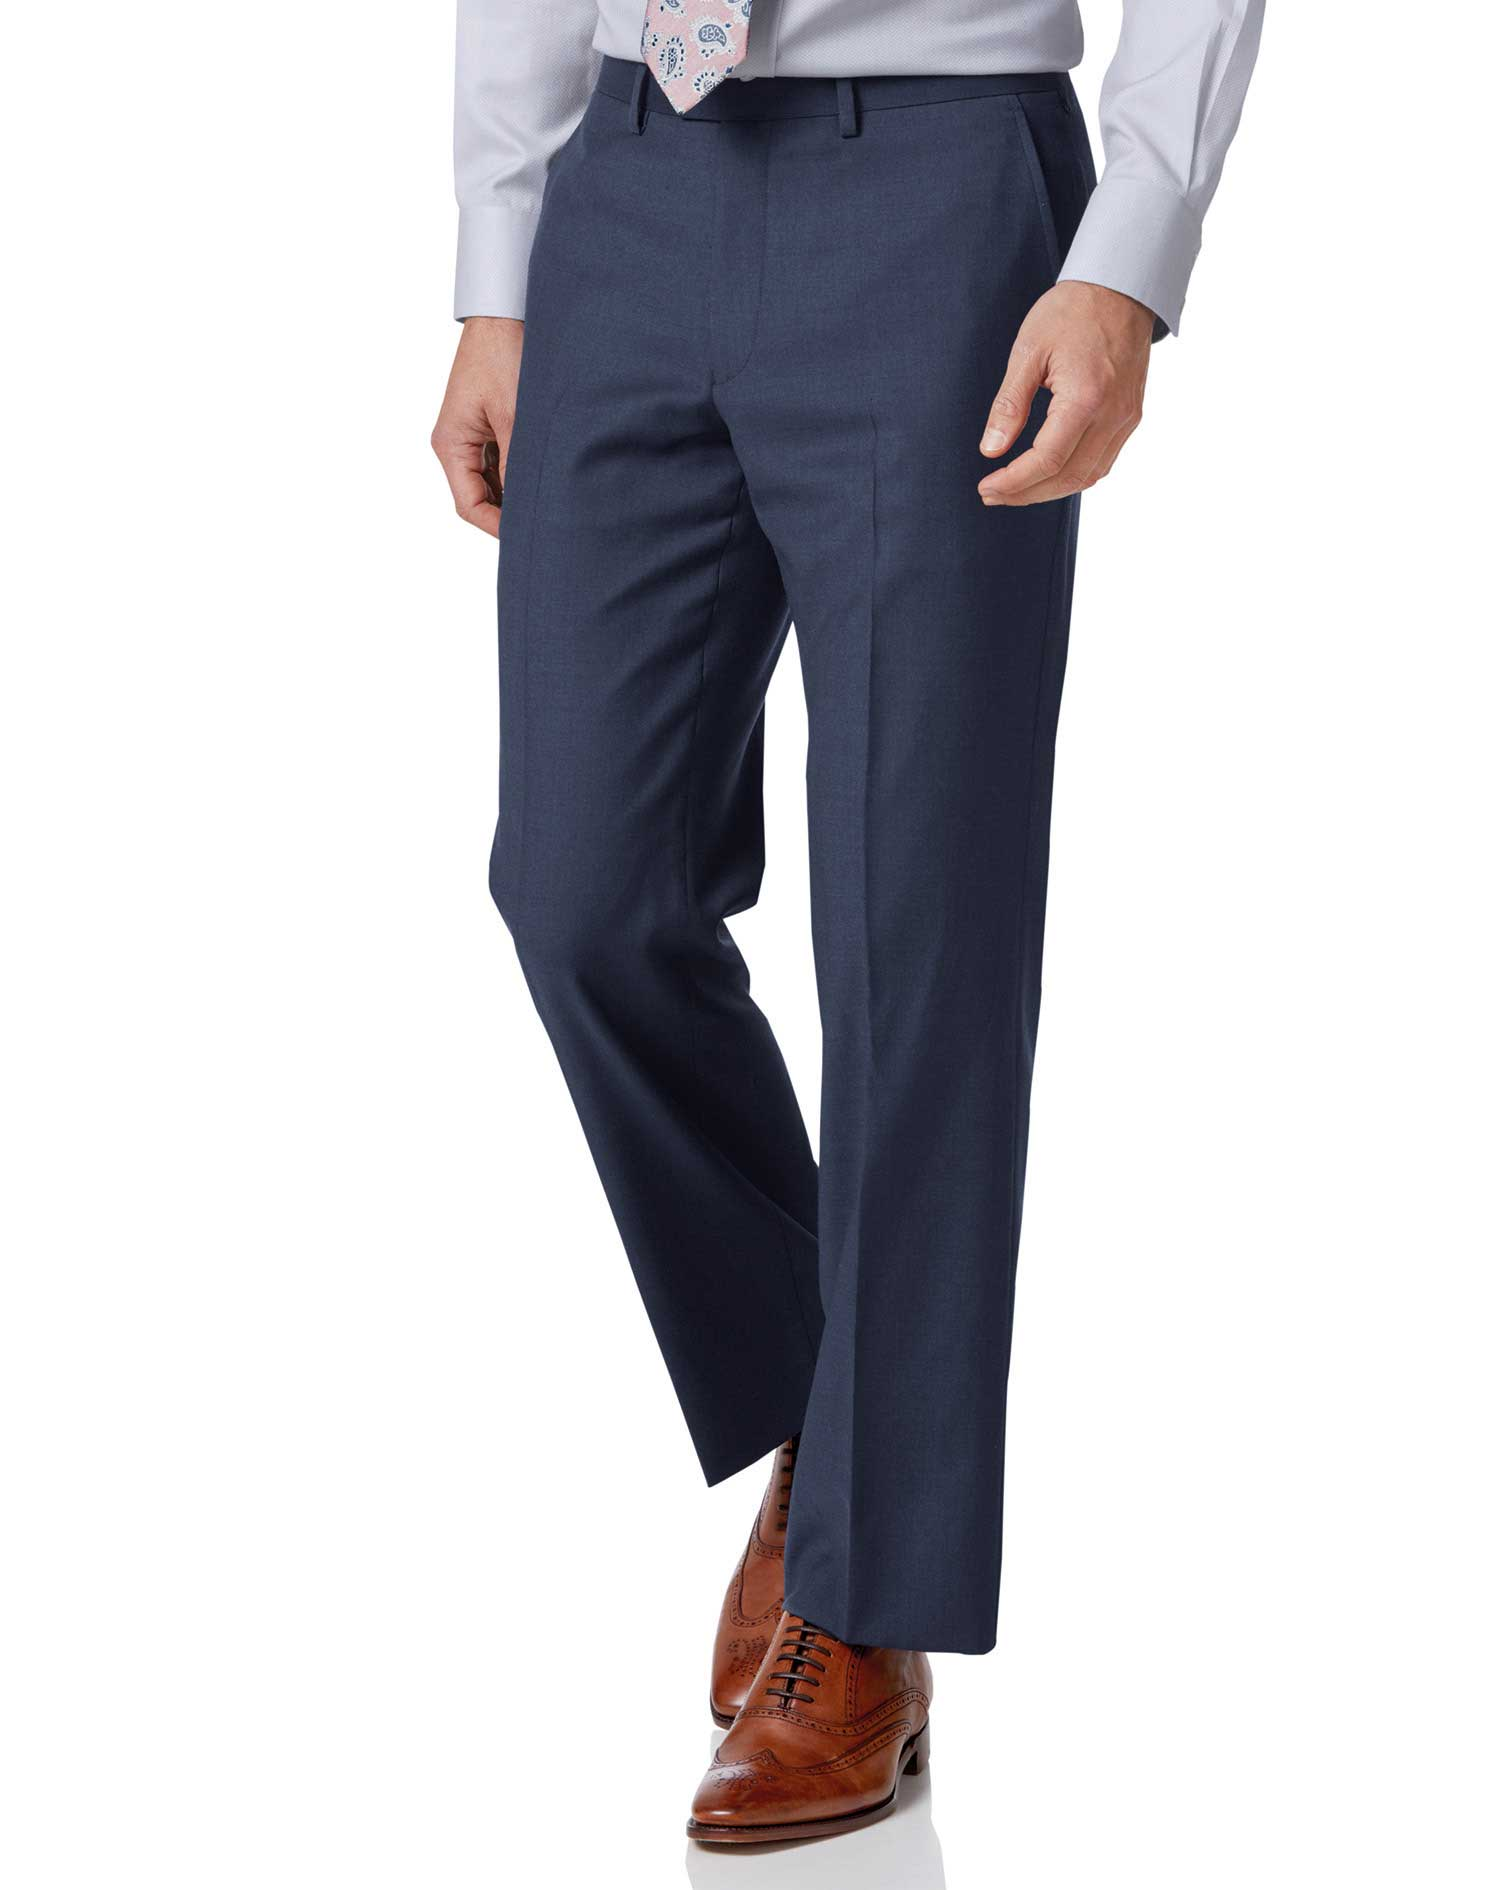 Mid Blue Classic Fit Twill Business Suit Trouser Size W40 L32 by Charles Tyrwhitt